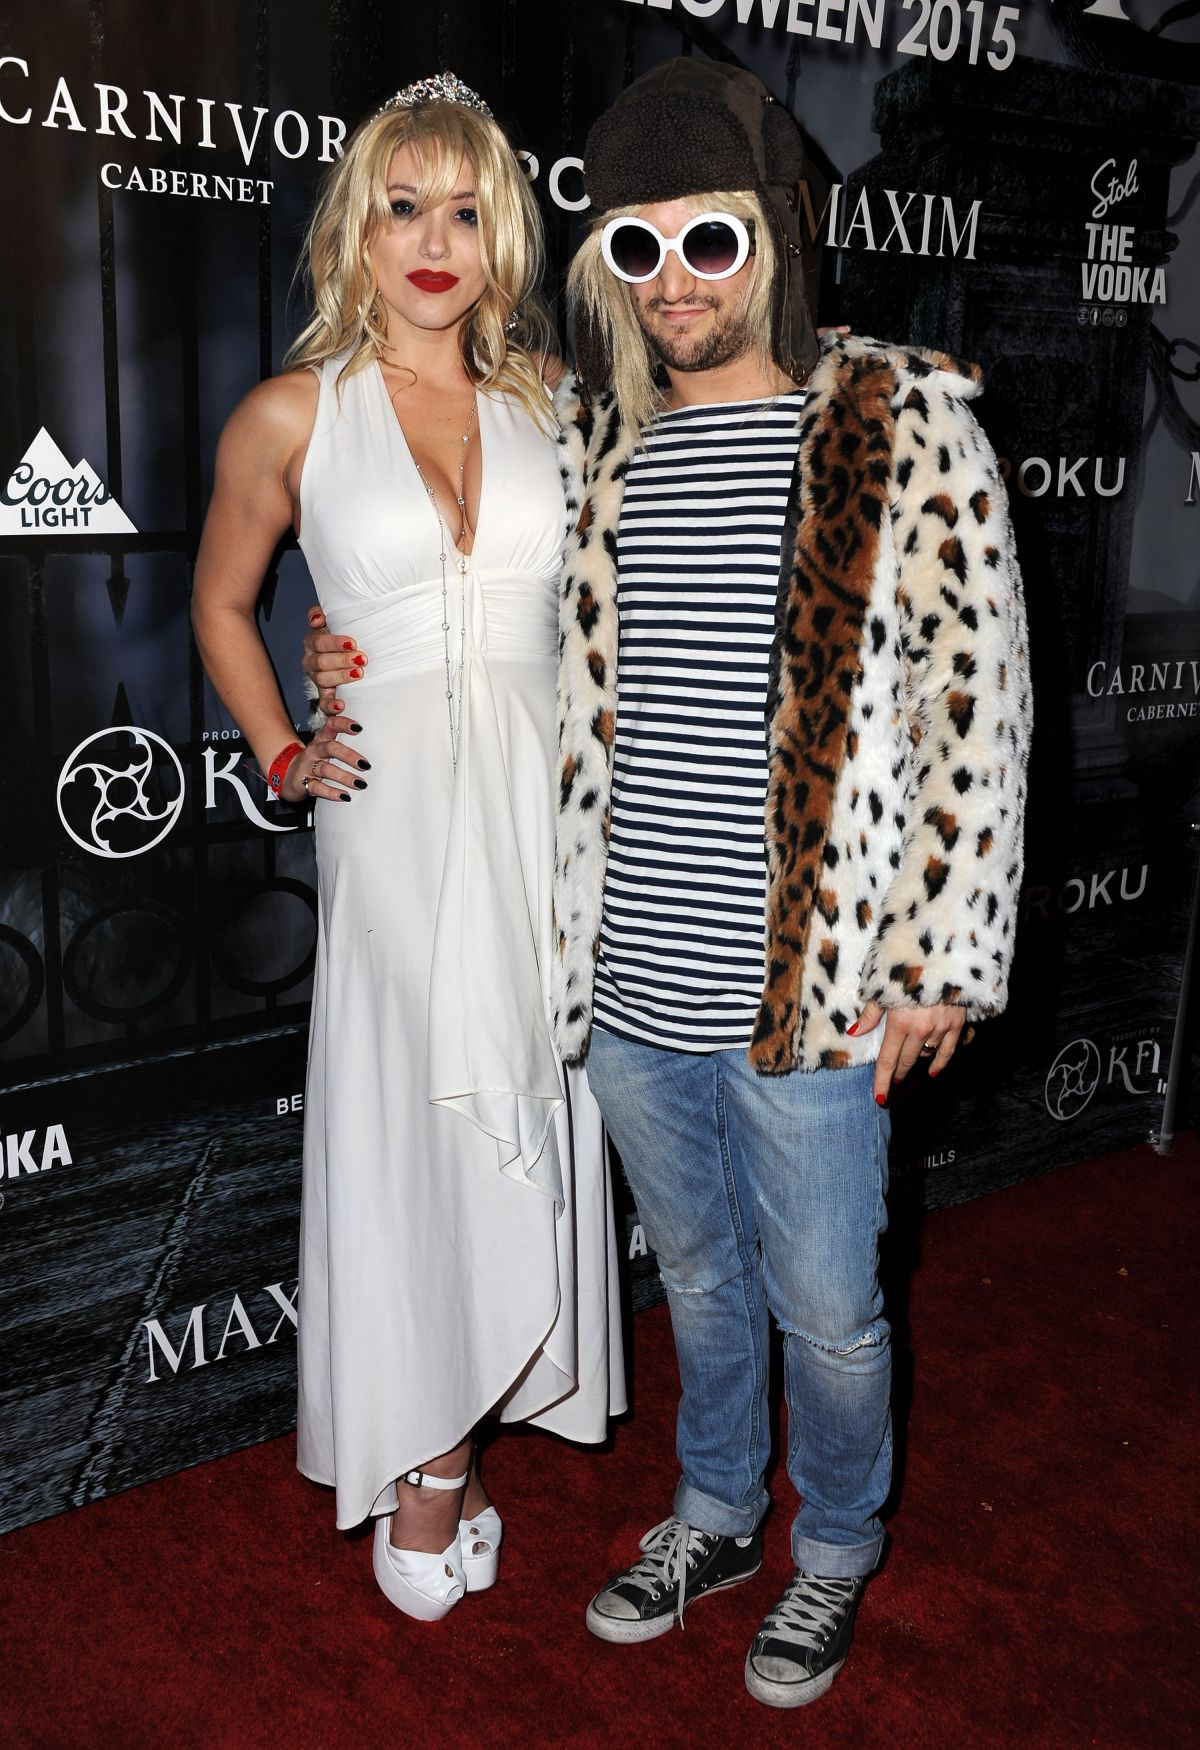 BC JEAN at Maxim Magazine's Official Halloween Party in Beverly ...